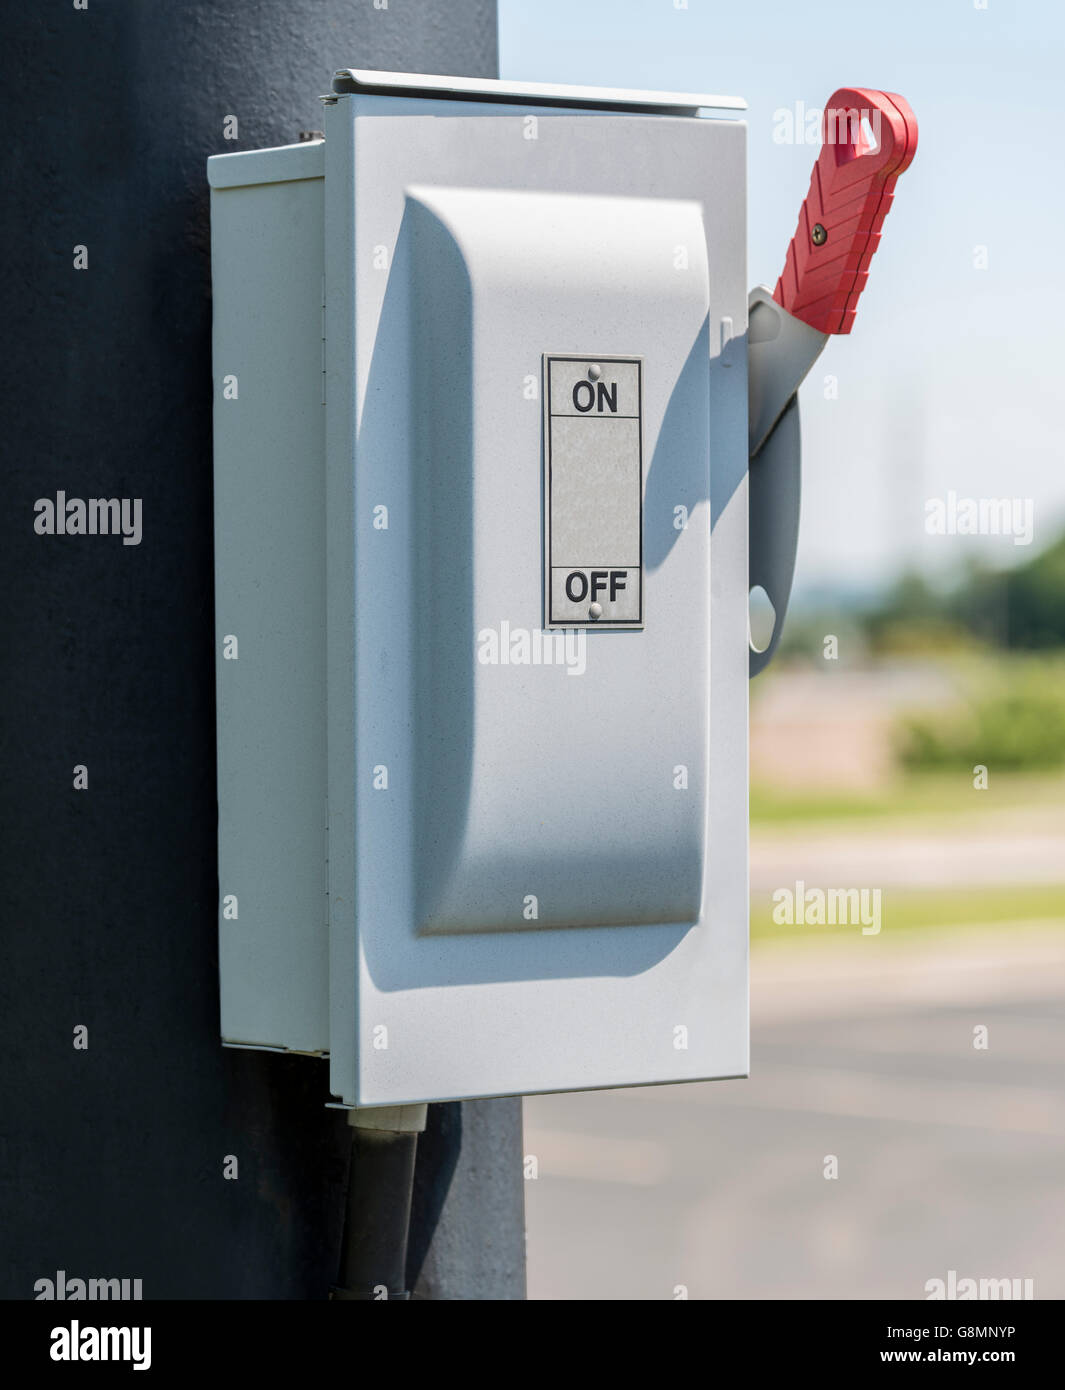 Vertical ON/OFF Lever on Electric box - Stock Image